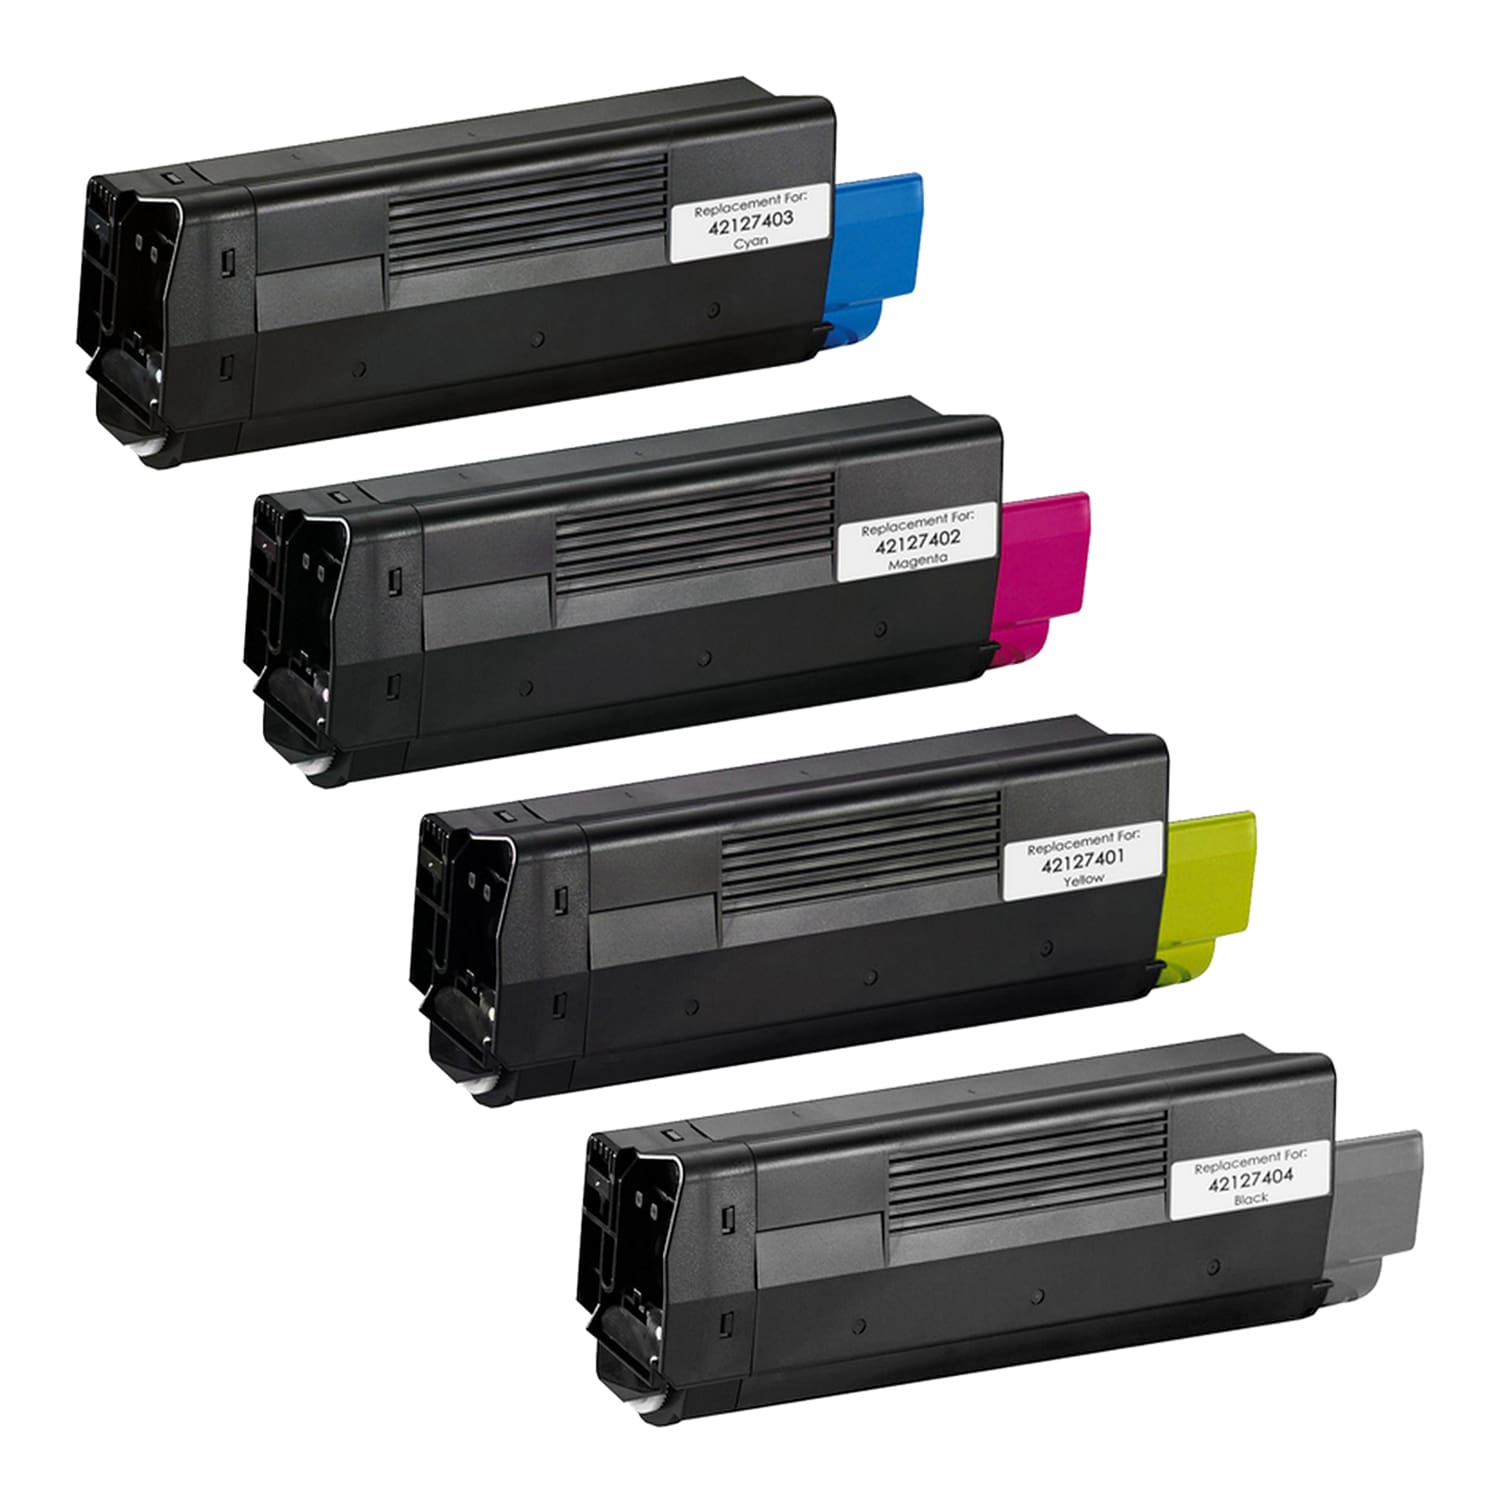 Remanufactured Okidata C5300 Toner High Capacity Pack - 4 Cartridges